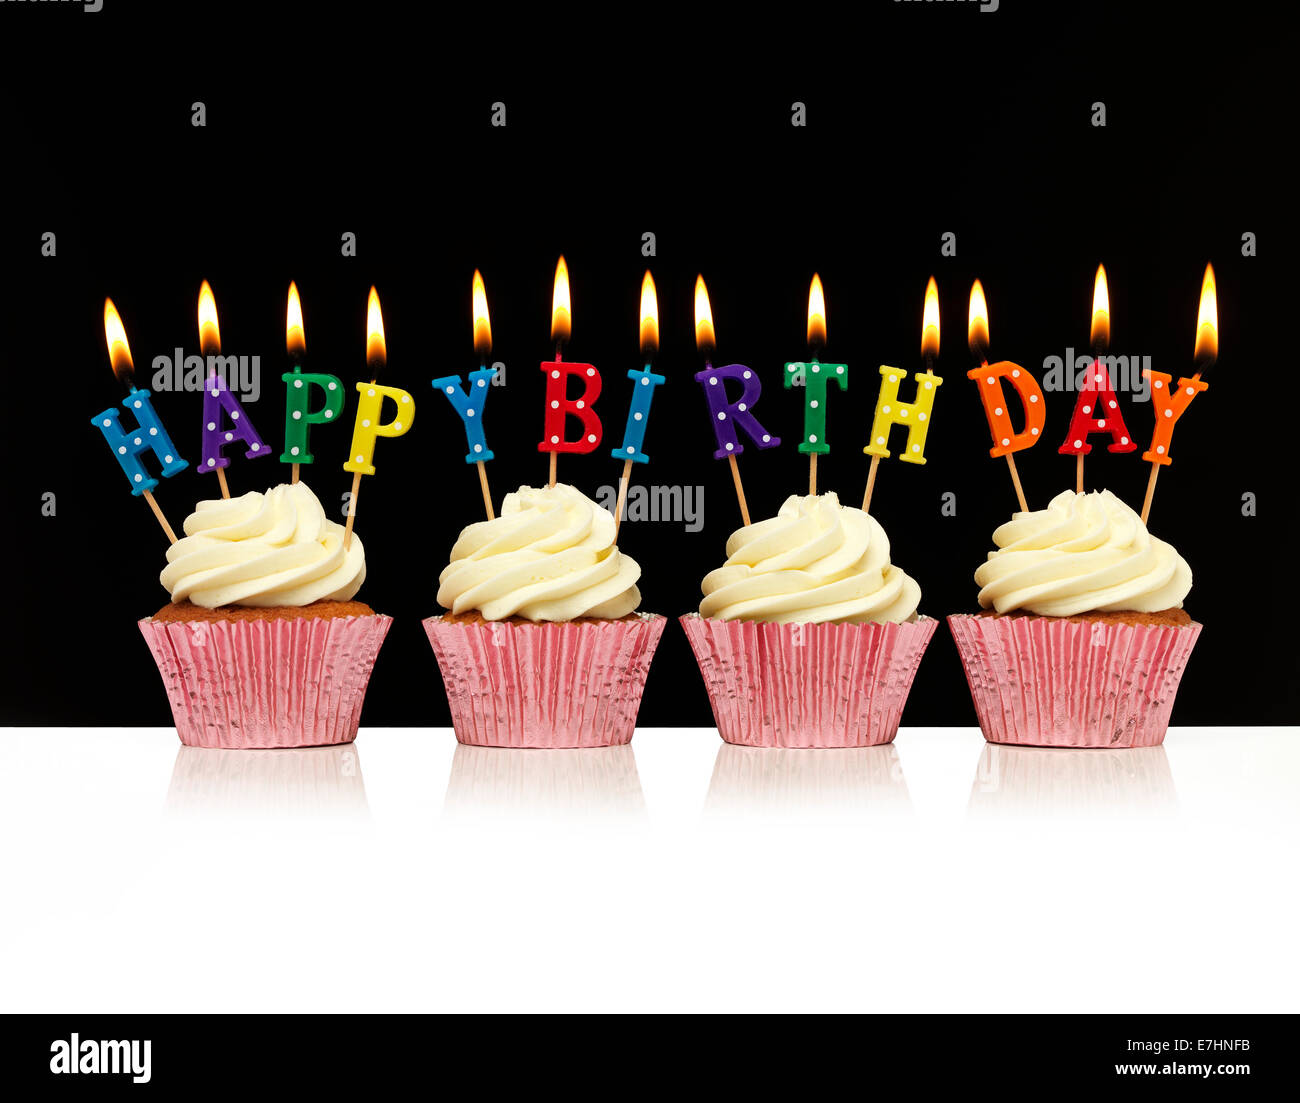 Cupcake With Happy Birthday Candles Stock Photo: 73534143